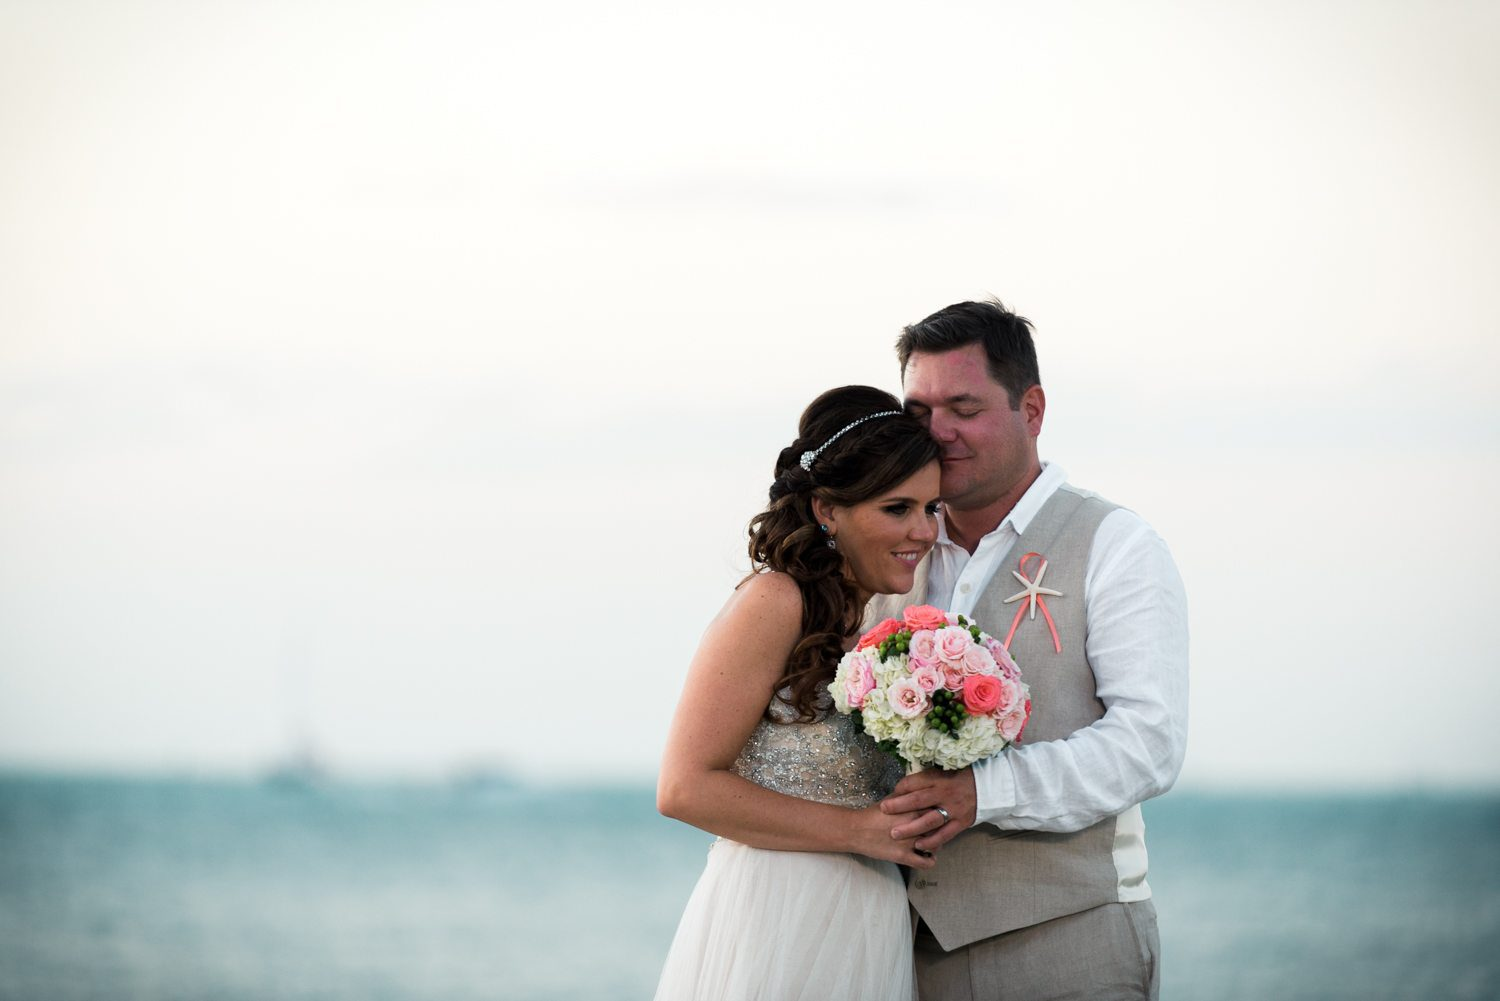 Erin Colin Fort Zachary Taylor Rooftop Cafe Key West Wedding Photographer 49 - Erin & Colin   Key West Wedding Photographer   Fort Zachary Taylor